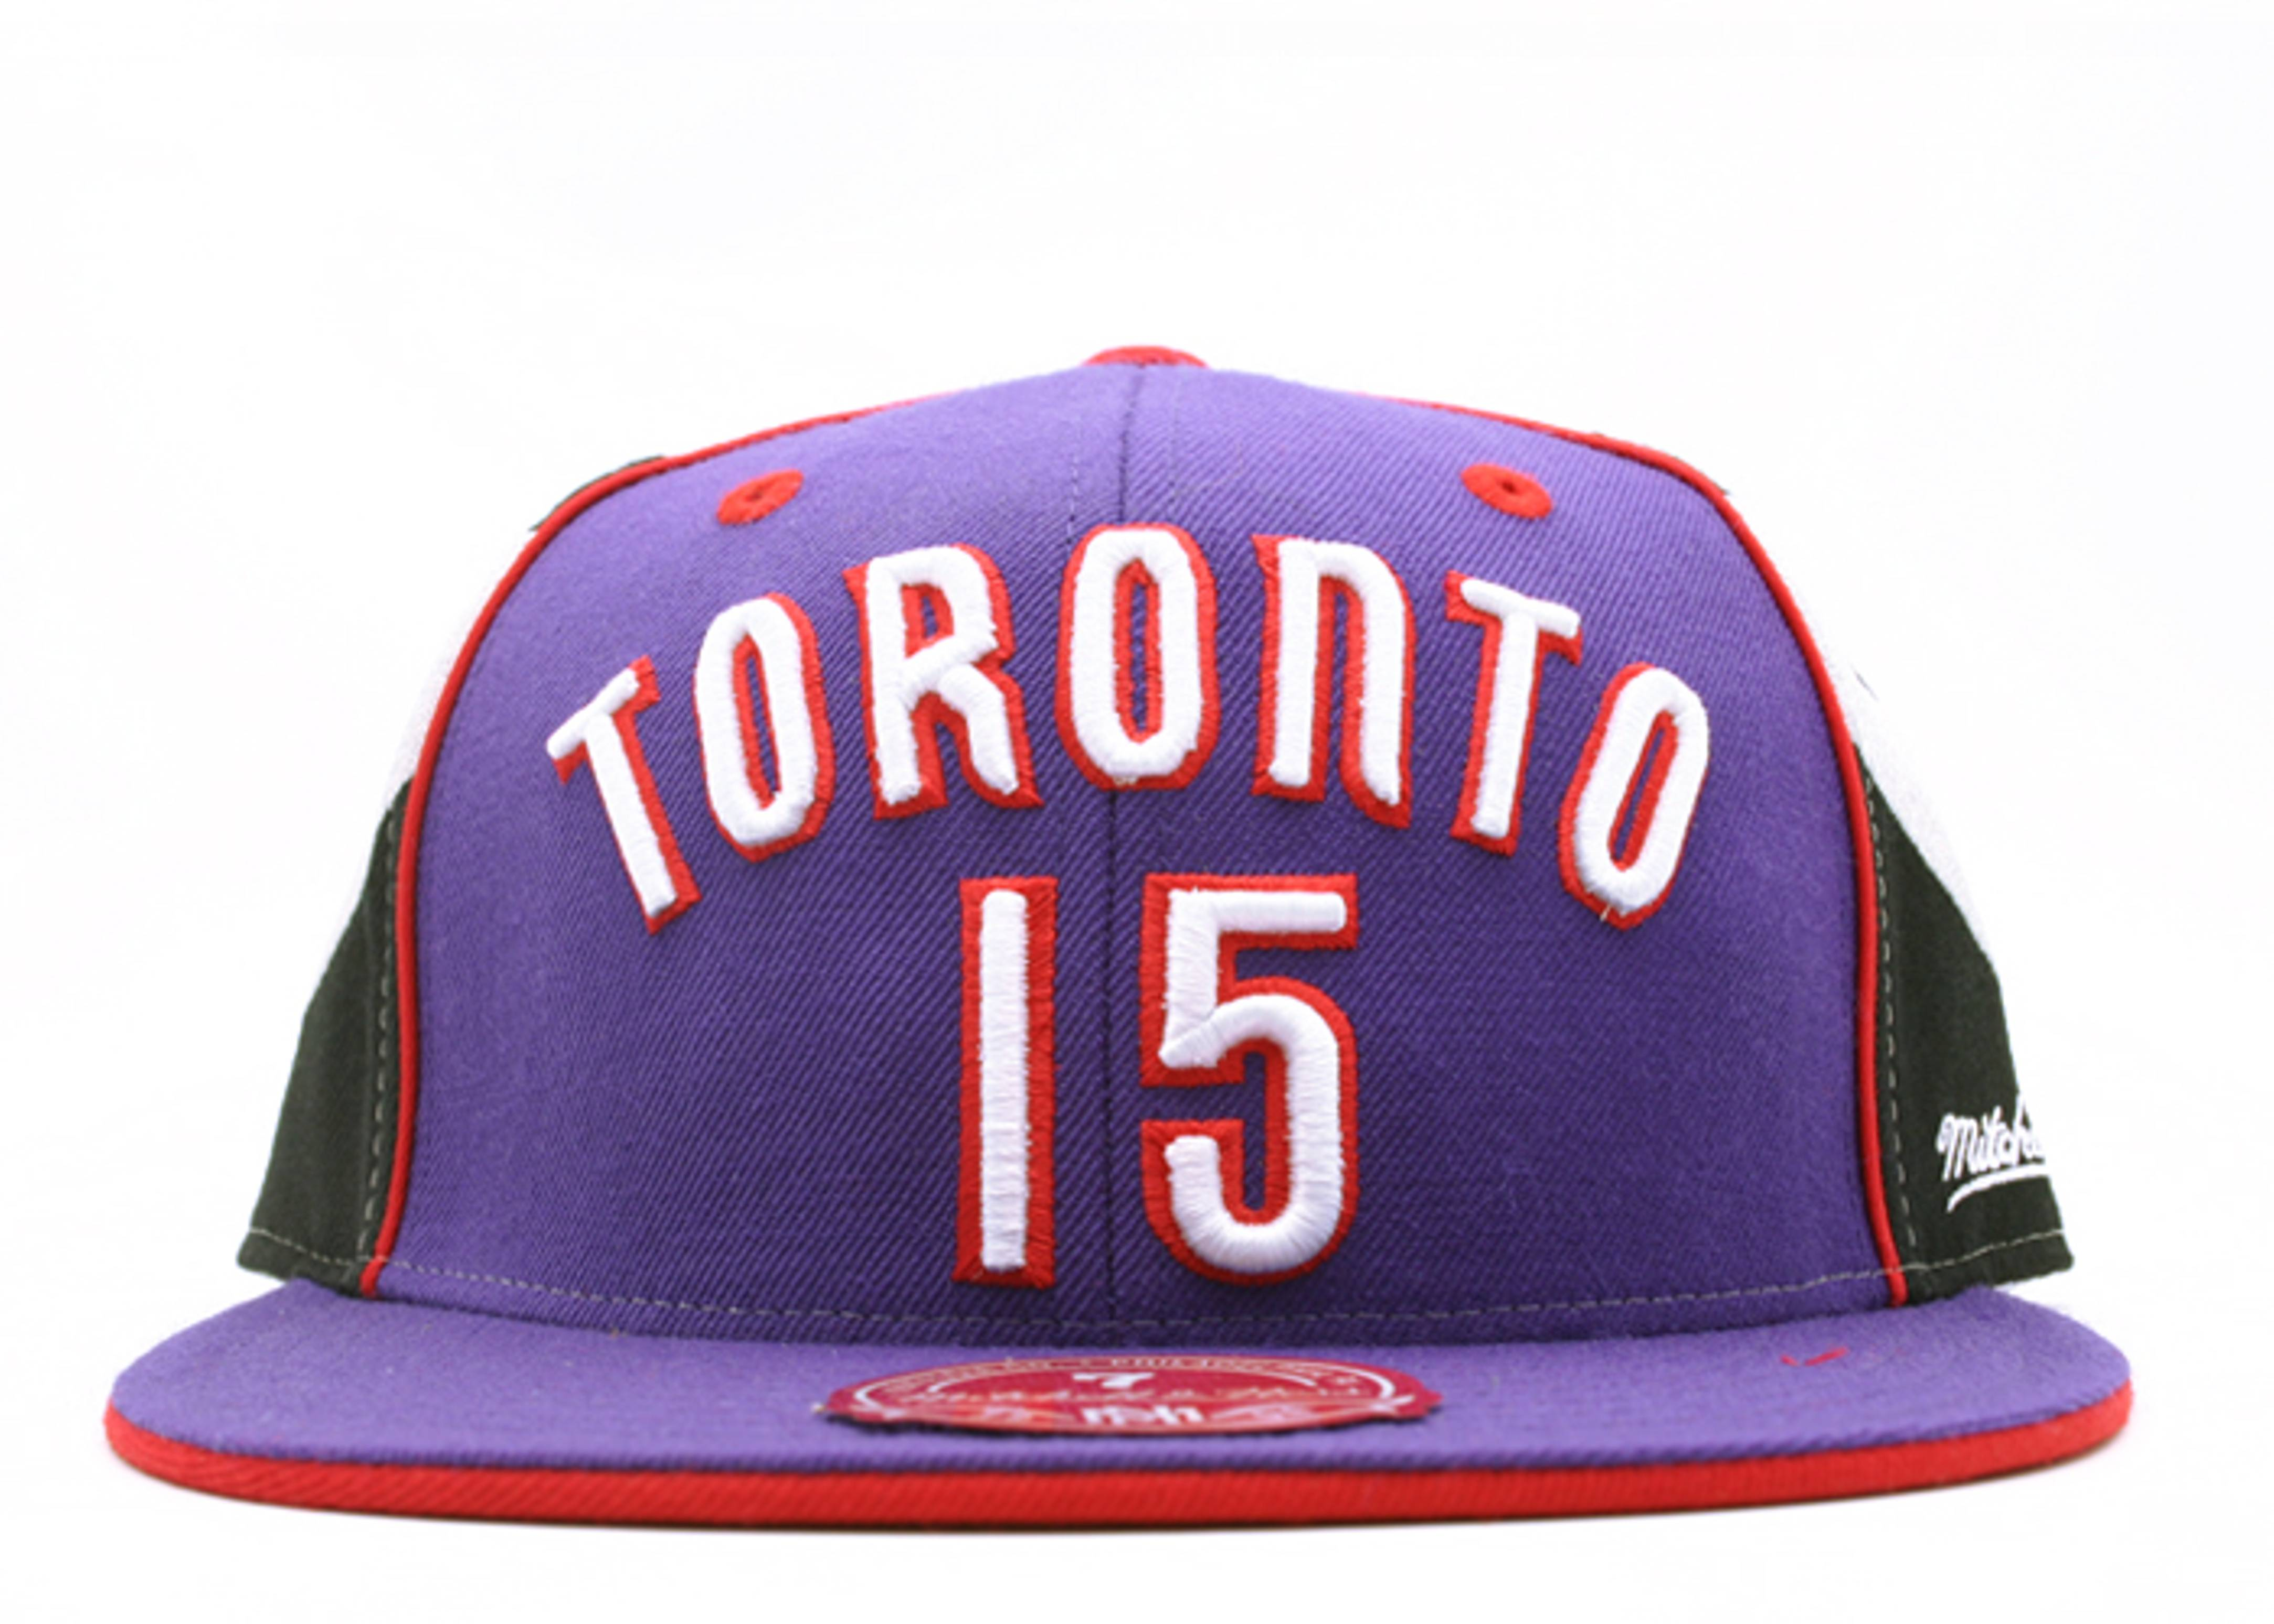 reputable site 914c4 8a8ed 2000 Dunk Champ Toronto Raptors Fitted